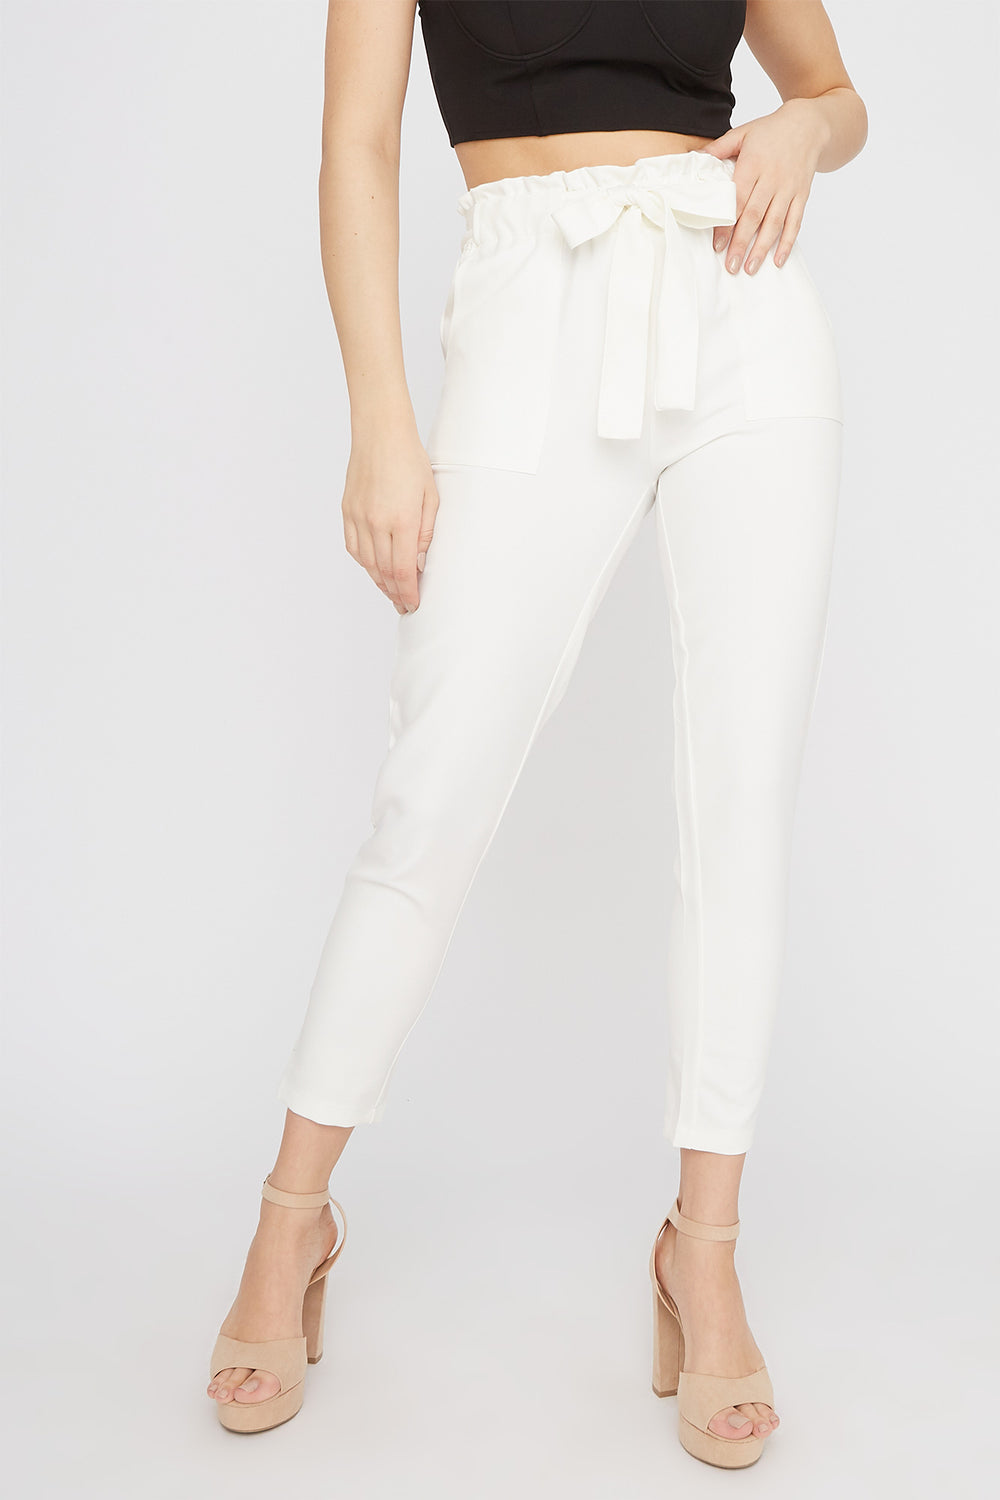 High-Rise Self-Tie Paperbag Skinny Pant White